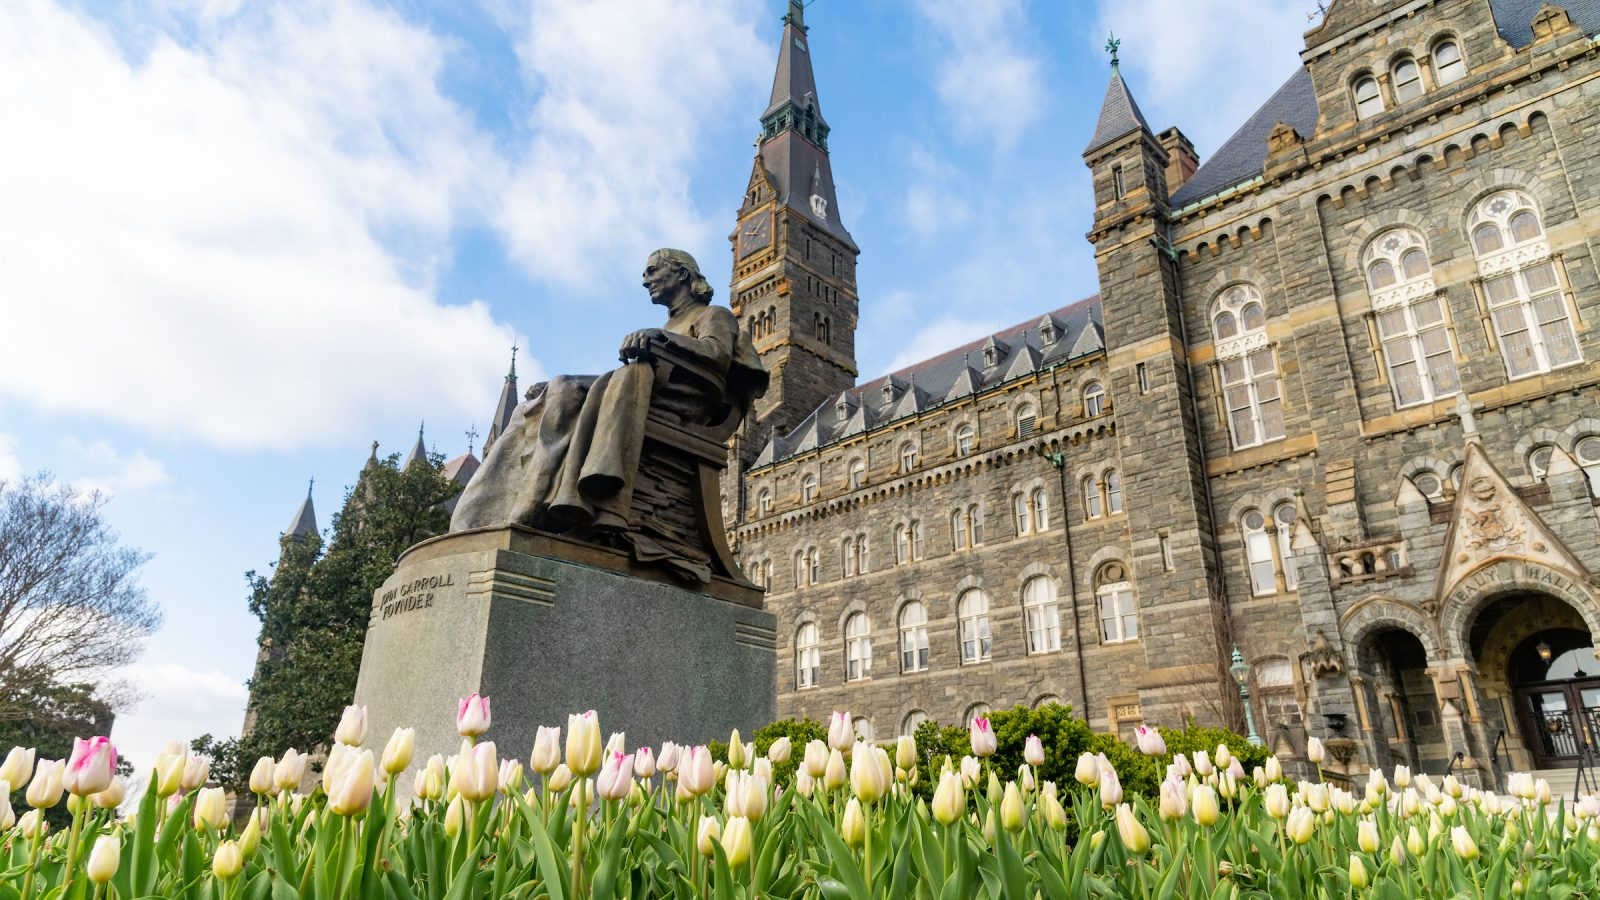 Tulips in front of John Carroll statue and Healy Hall